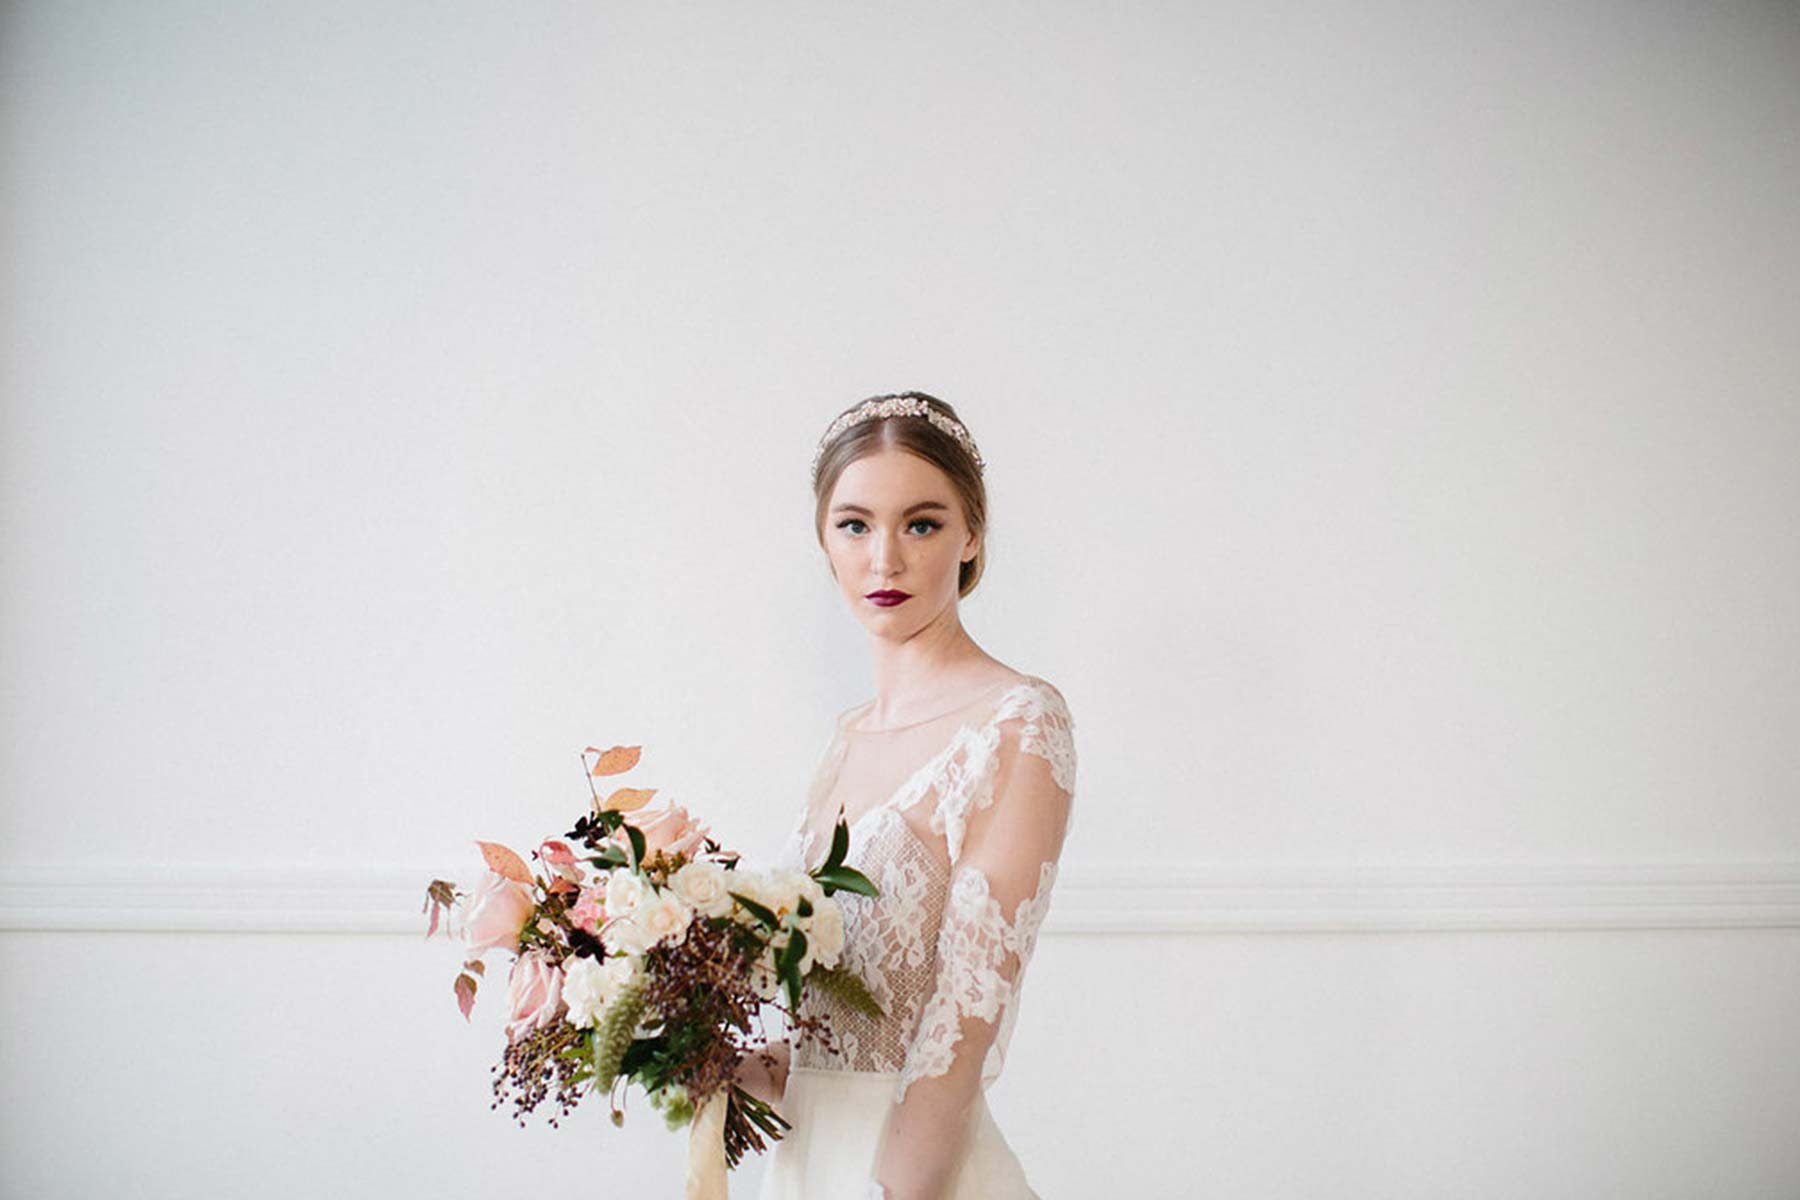 bride wearing a headpiece and holding a bouquet